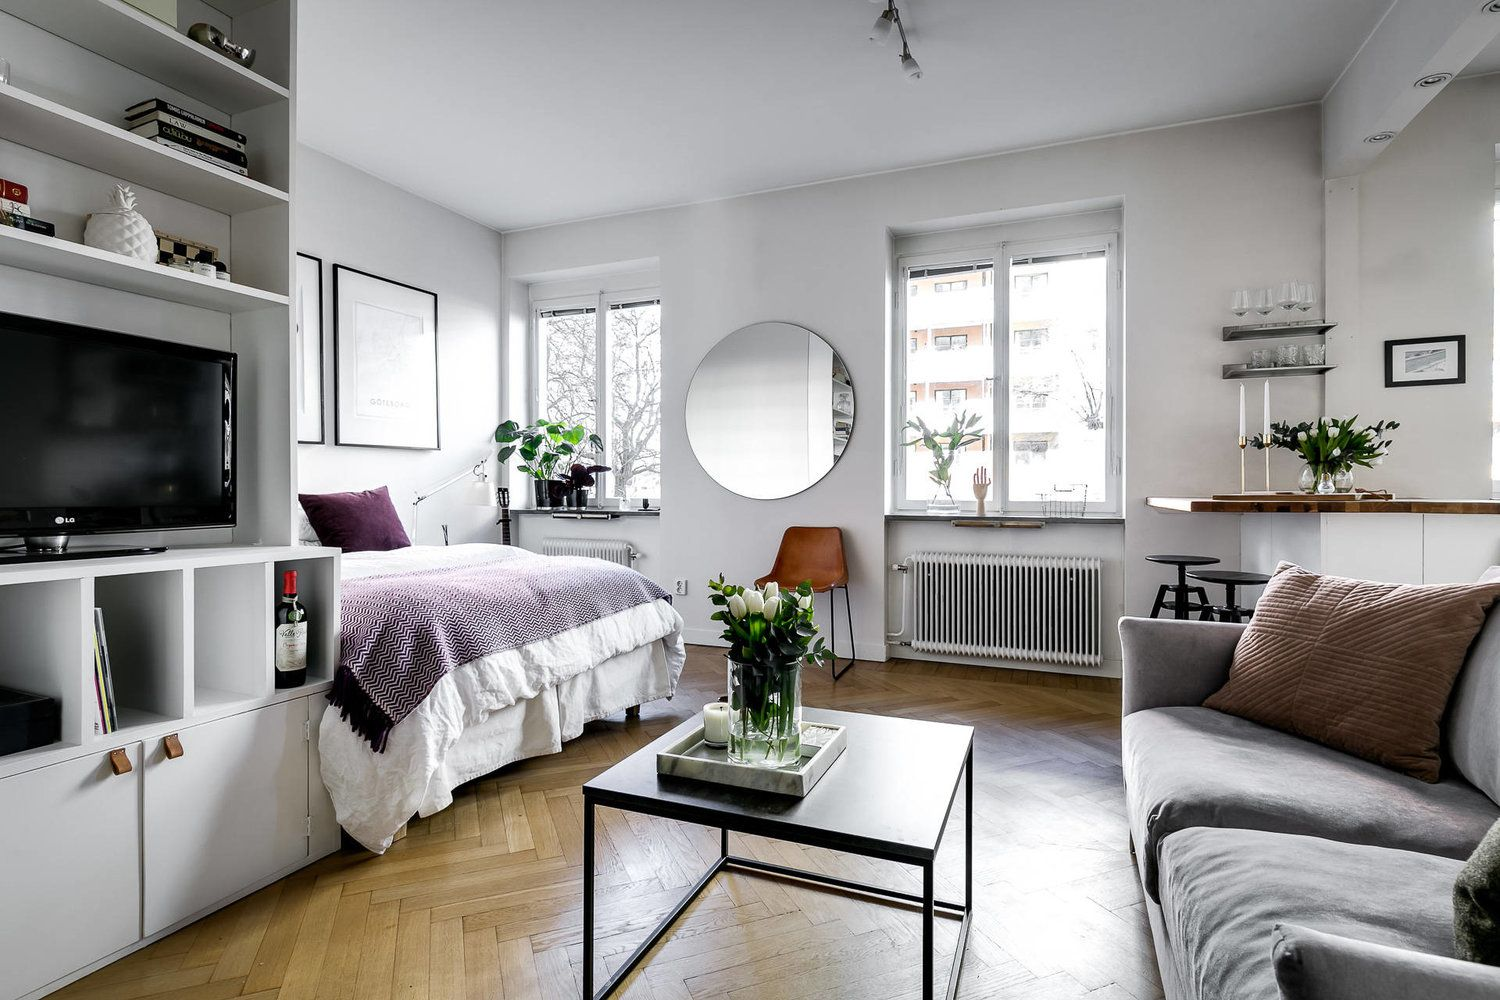 Cozy One Room Apartment In Perfect Style One Room Flat One Room